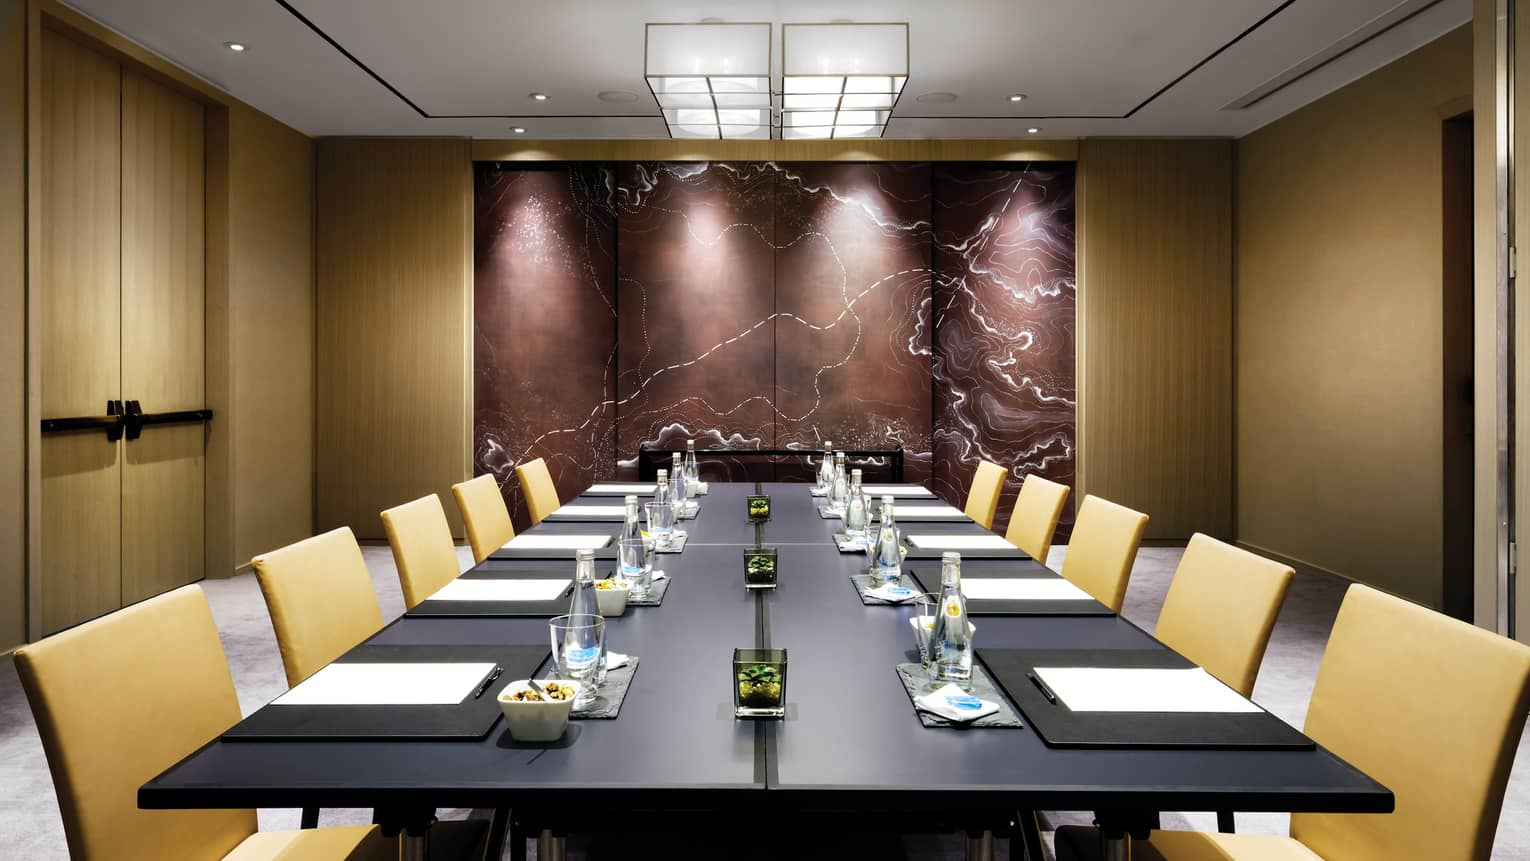 Northland Meeting Room large boardroom table with modern tan chairs